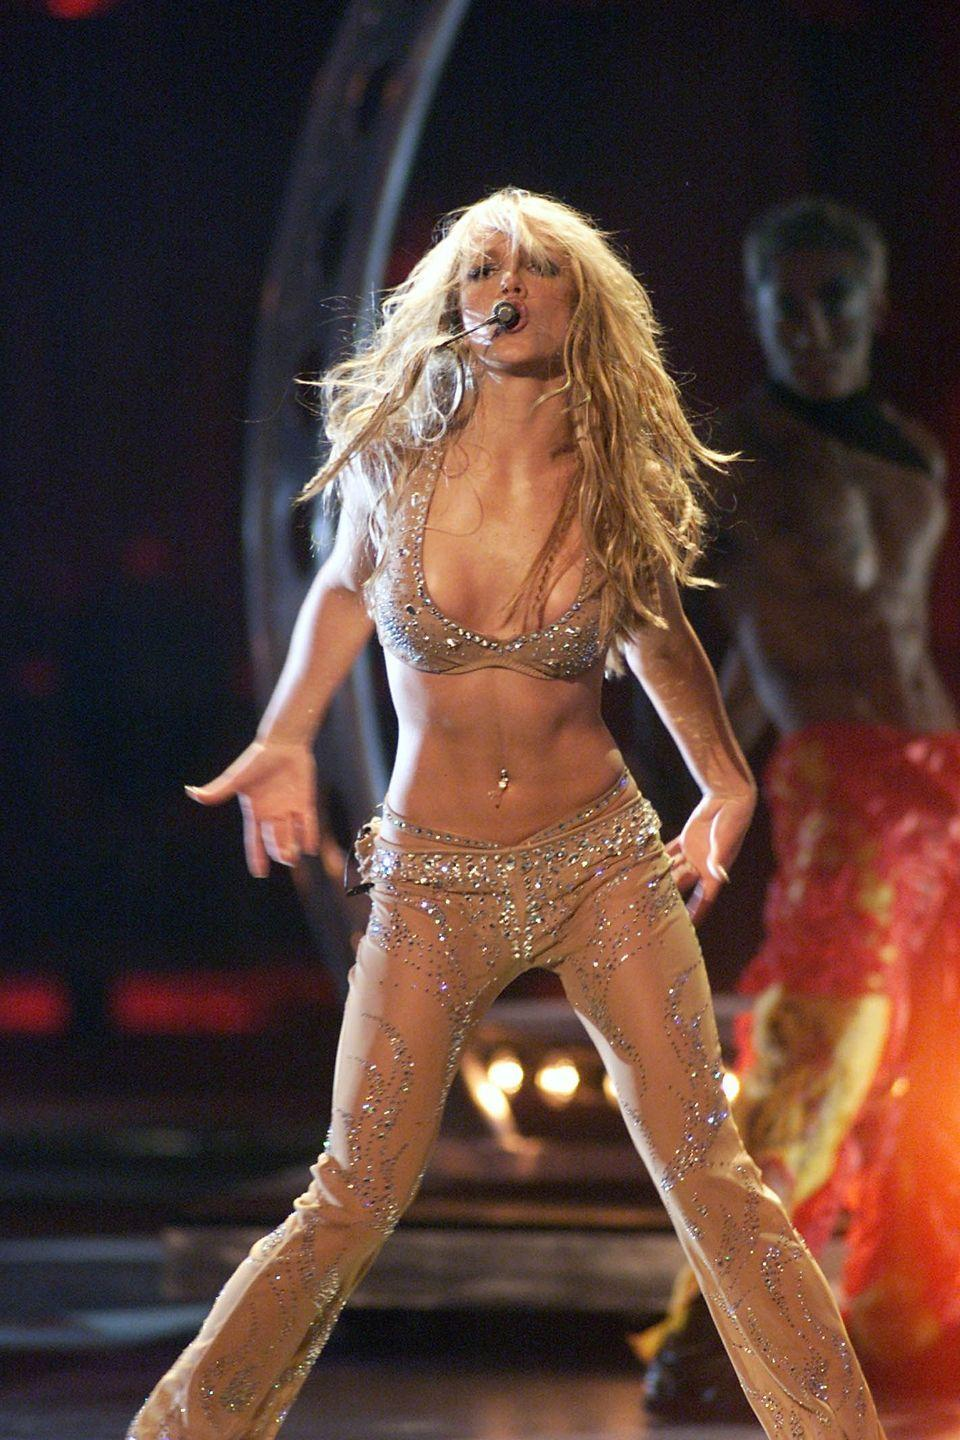 <p>Performing at the 2000 MTV Video Music Awards in a sheer, nude costume accented with crystals.</p>